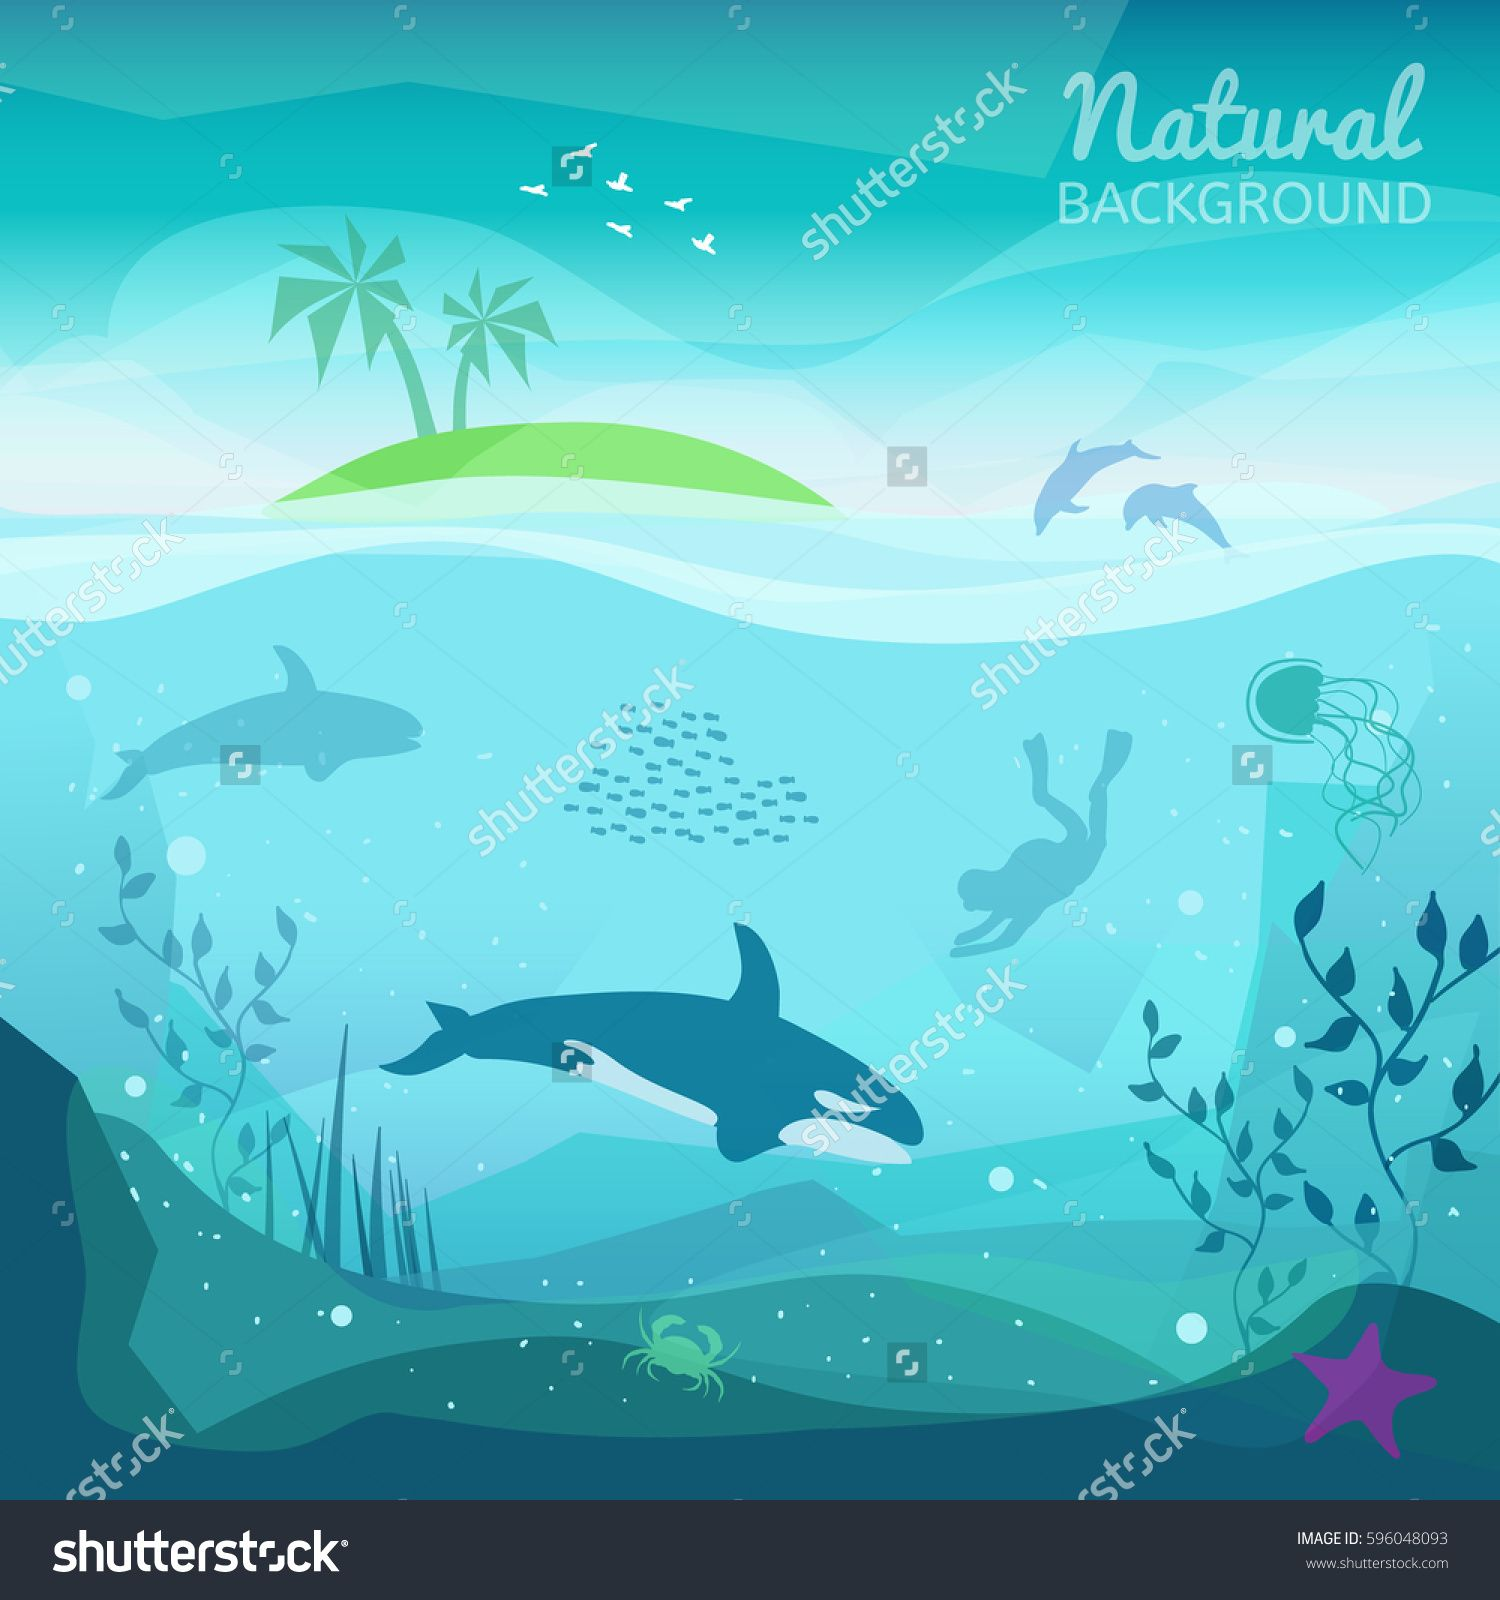 Tropical Sea Natural Background Landscape Of Marine Life Island In The Ocean And Underwater World Underwater Background Natural Background Ocean Backgrounds